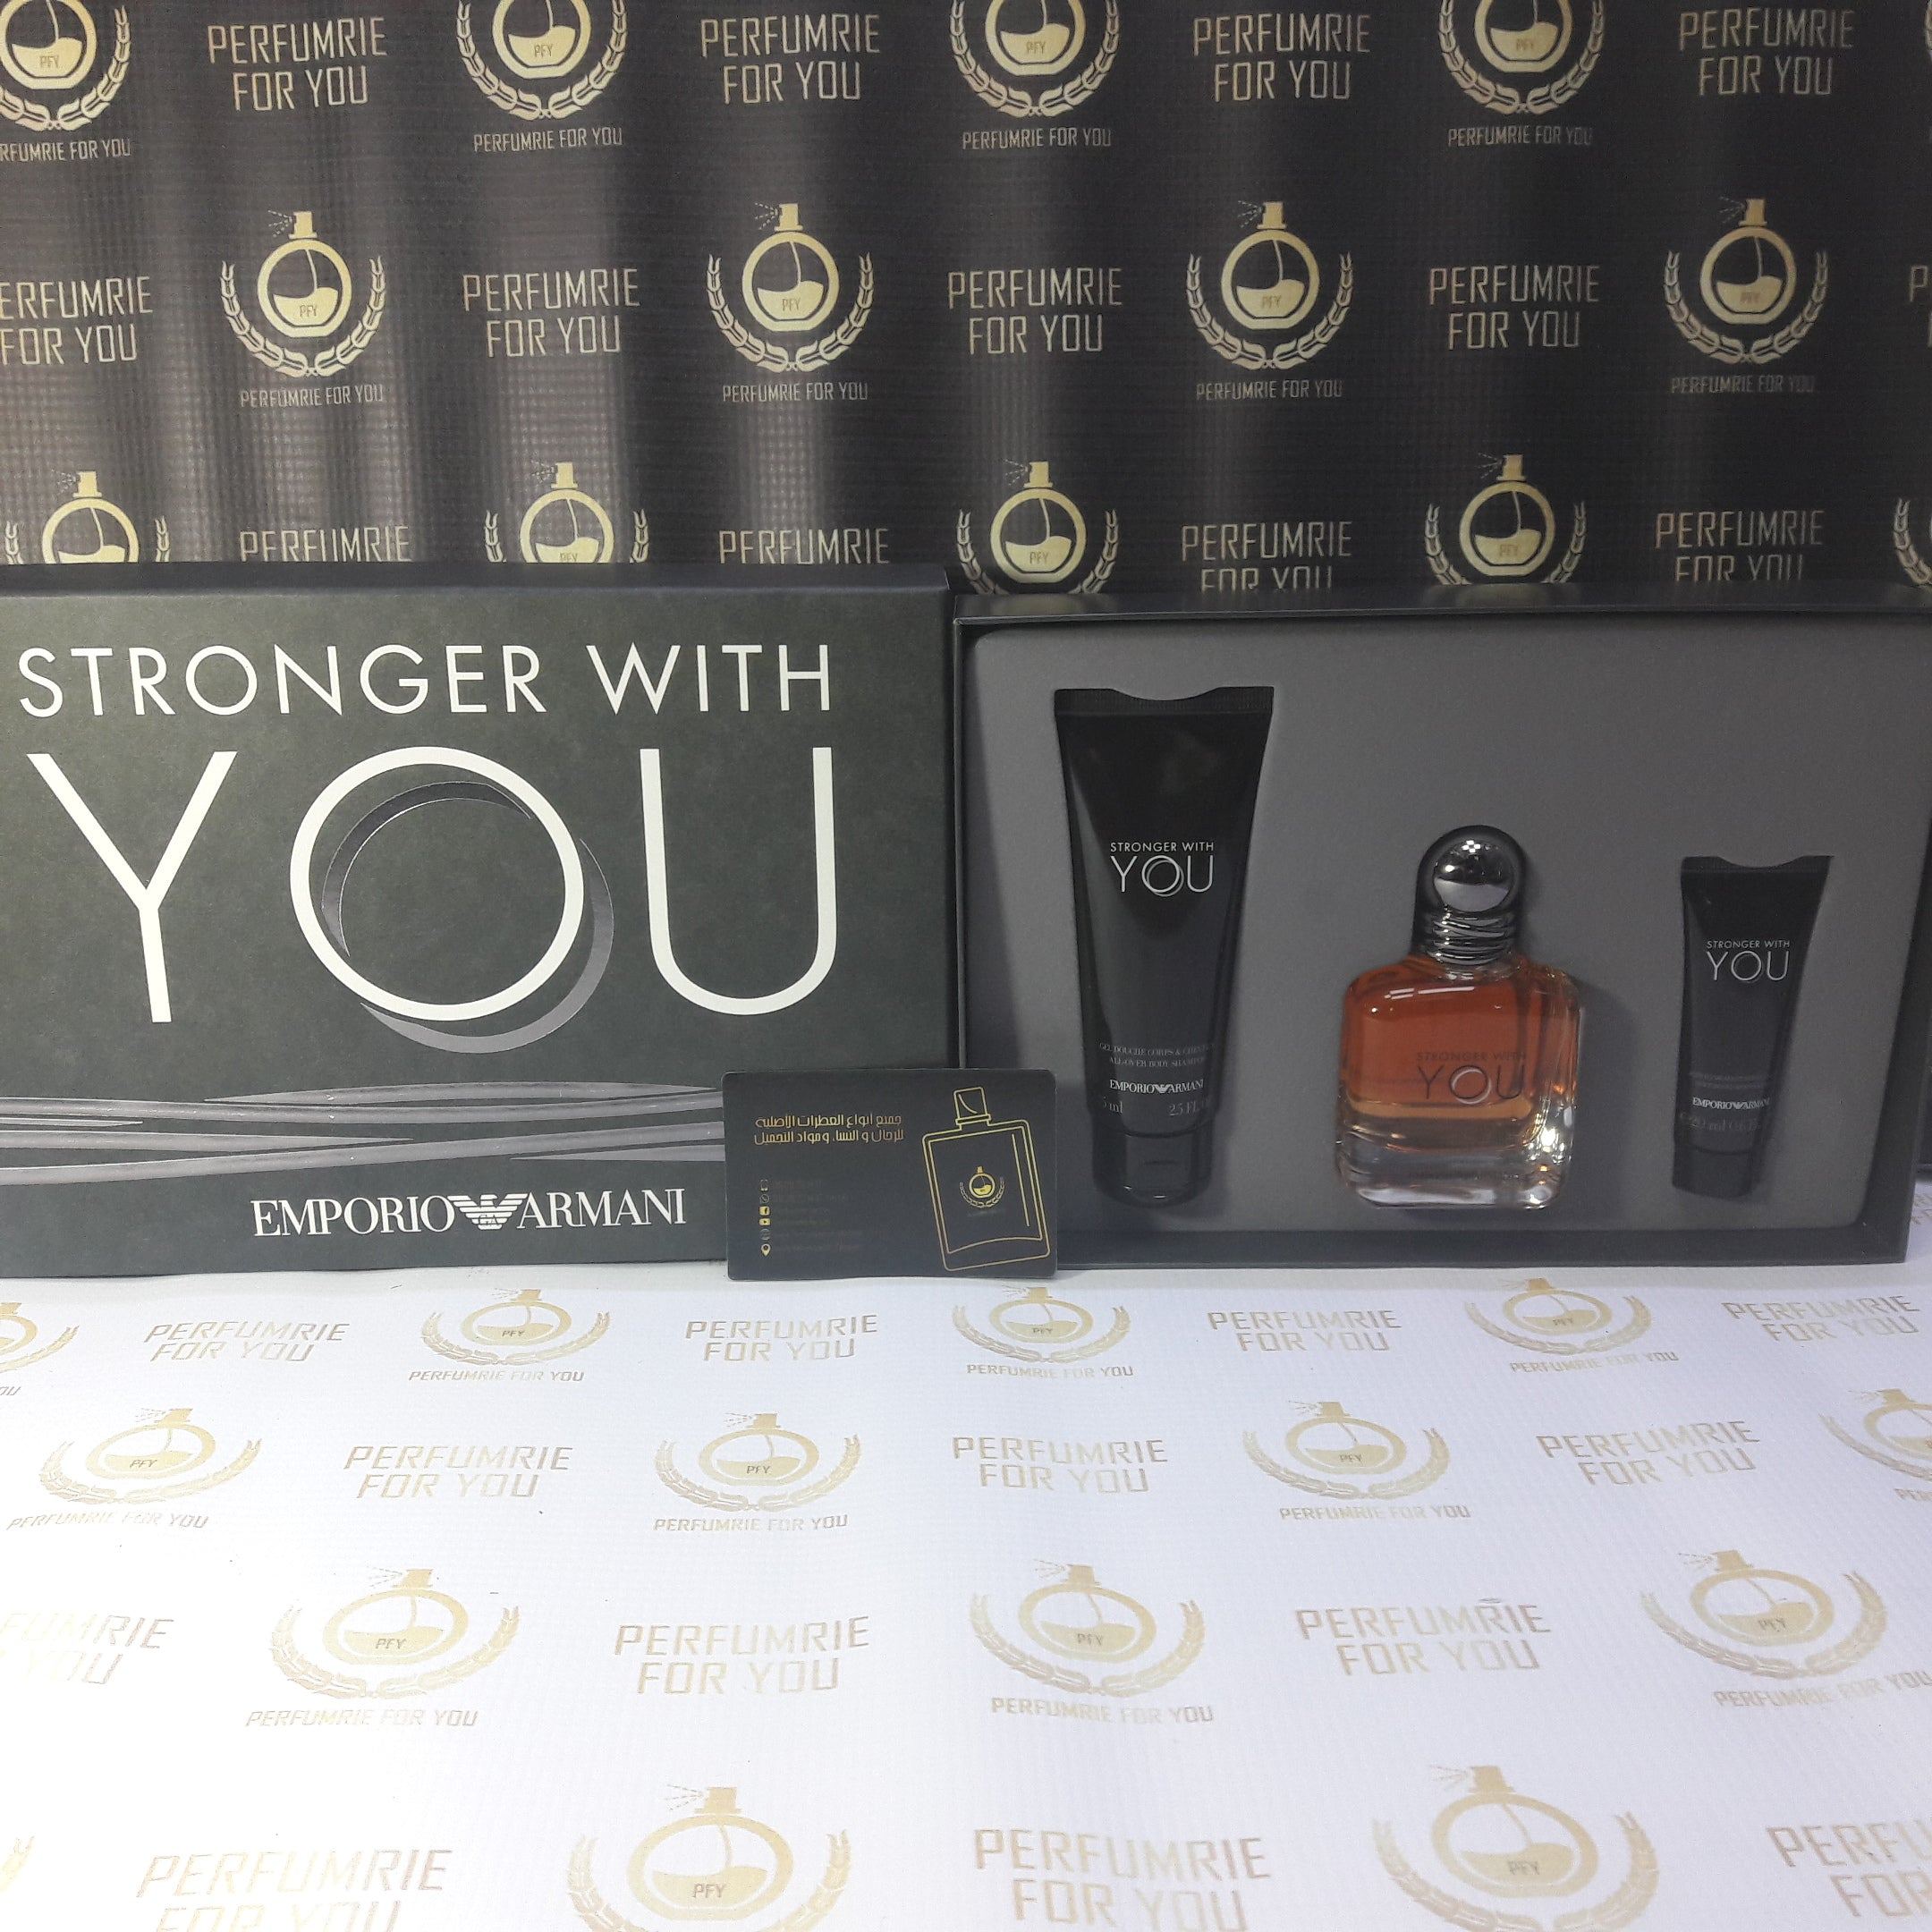 Coffret Du Parfum Stronger With You Demporio Armani Perfumrie Foryou